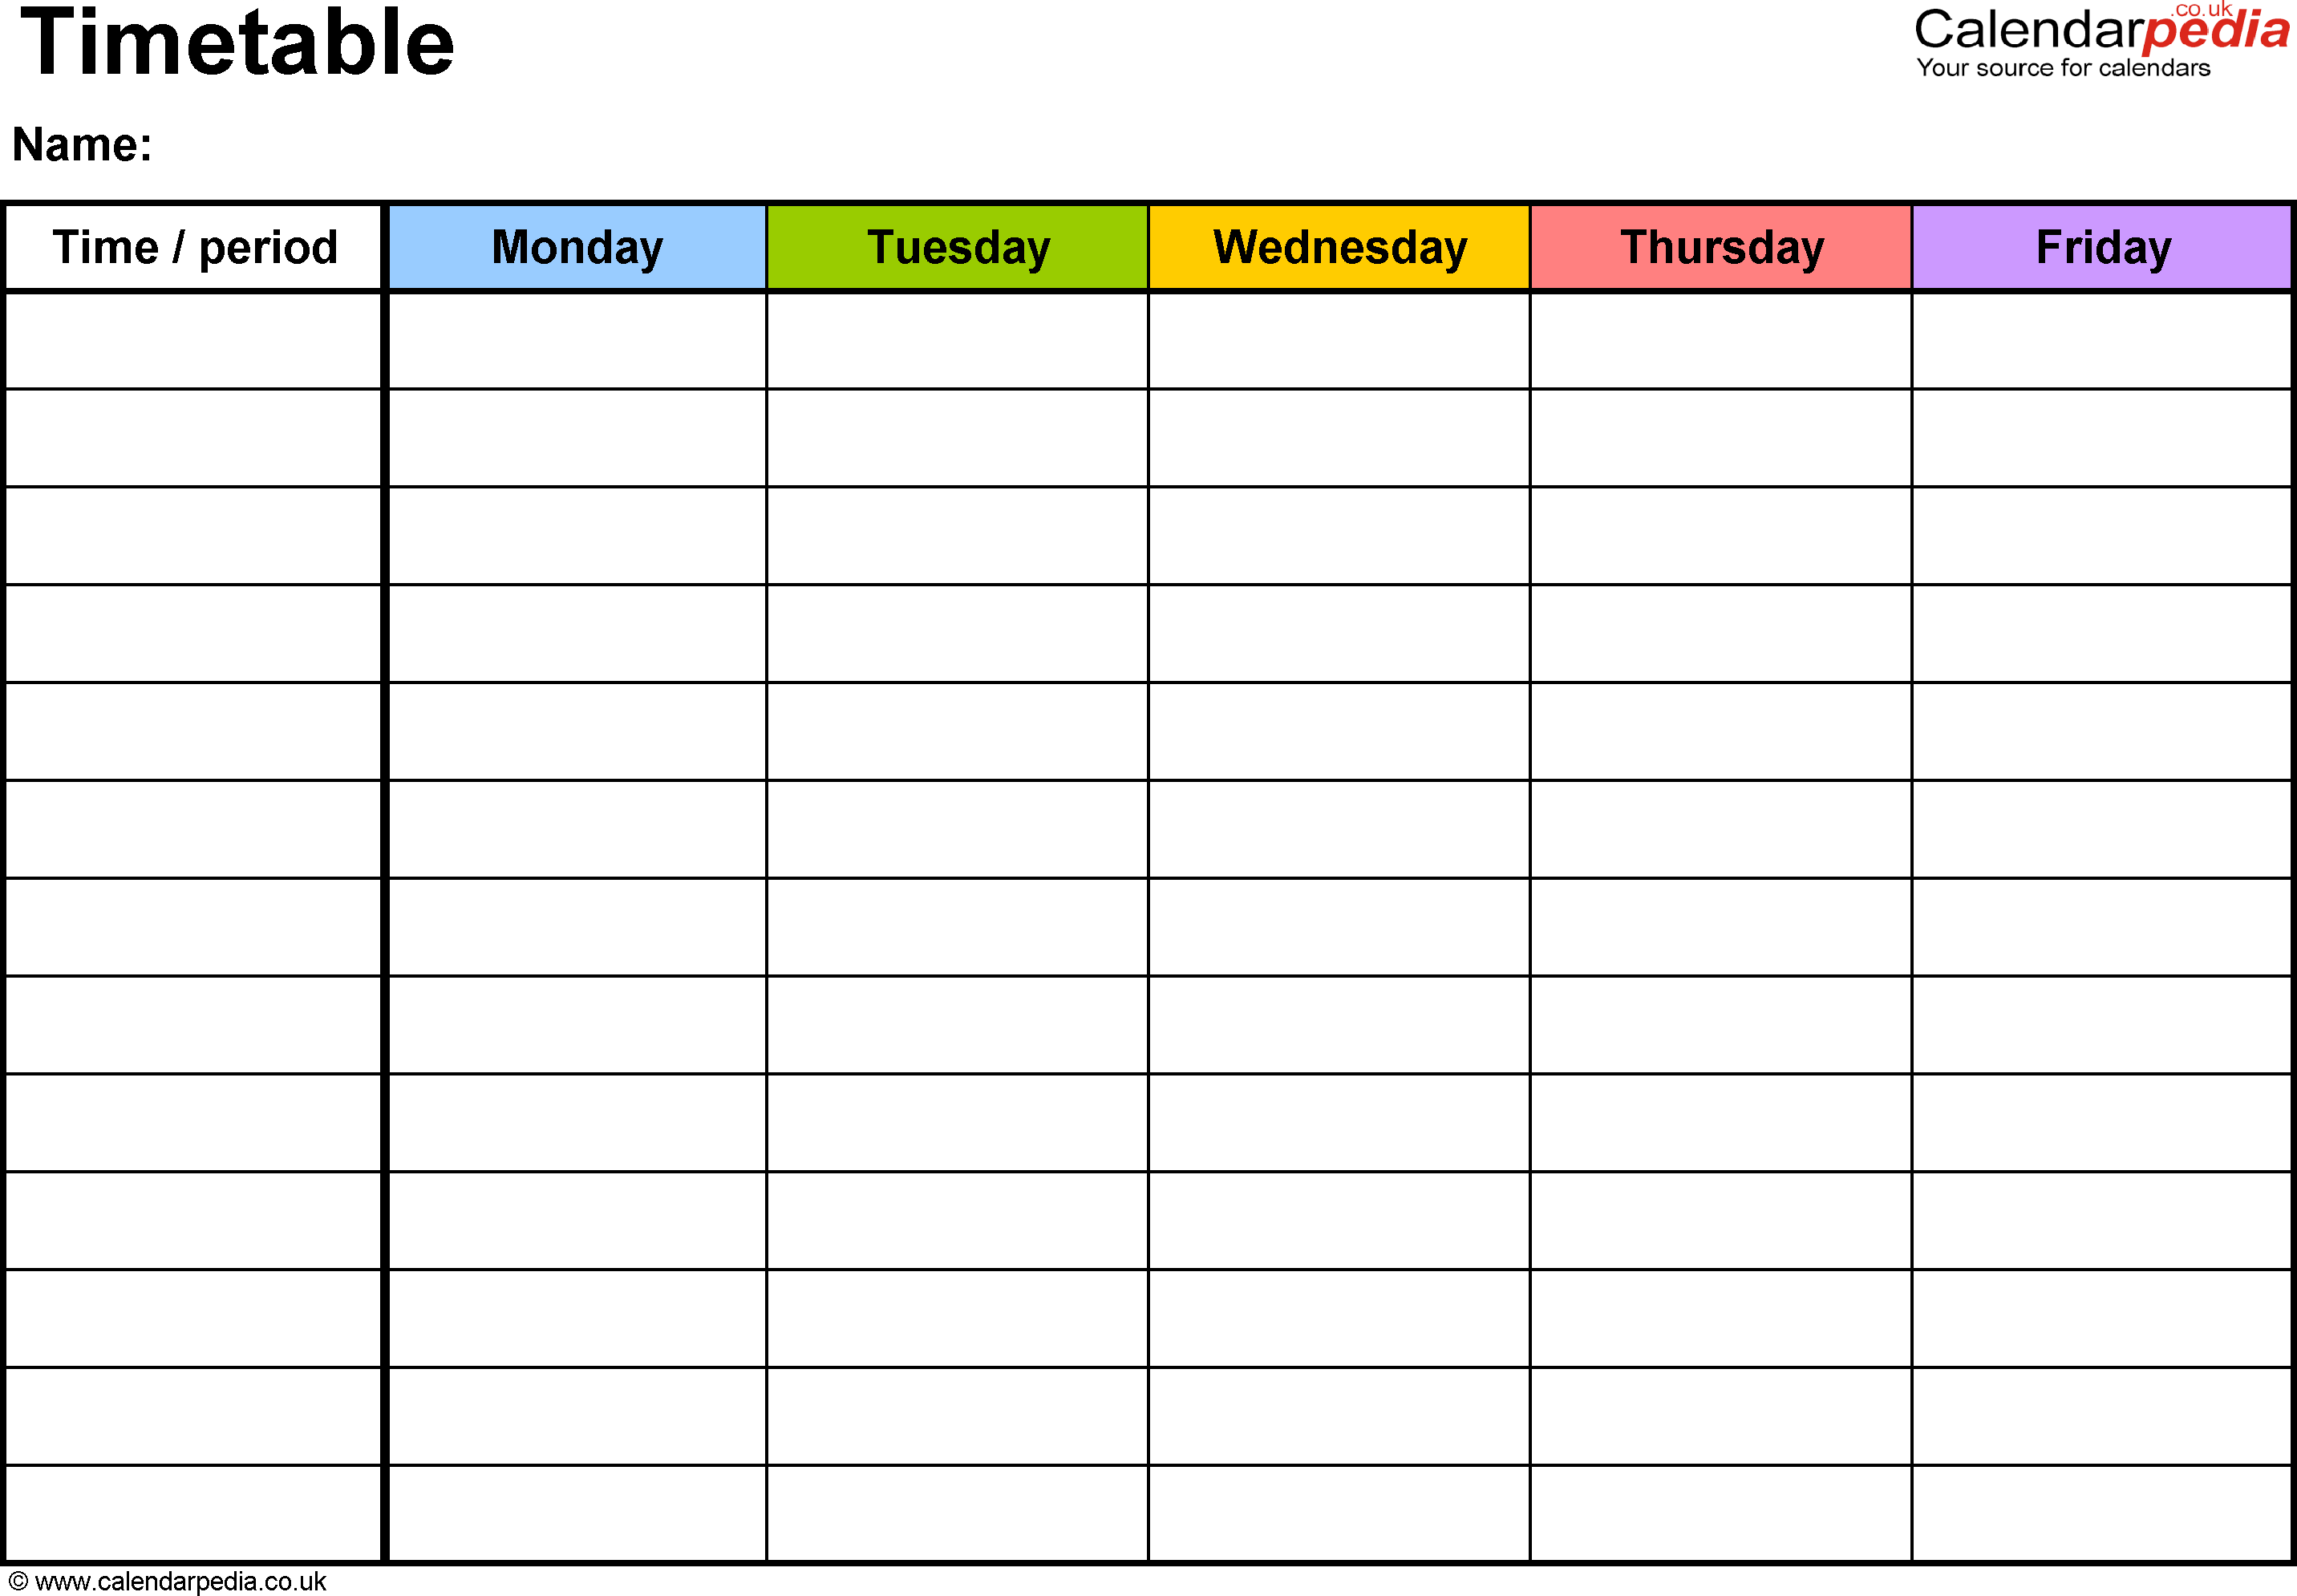 Timetable Templates For Microsoft Word